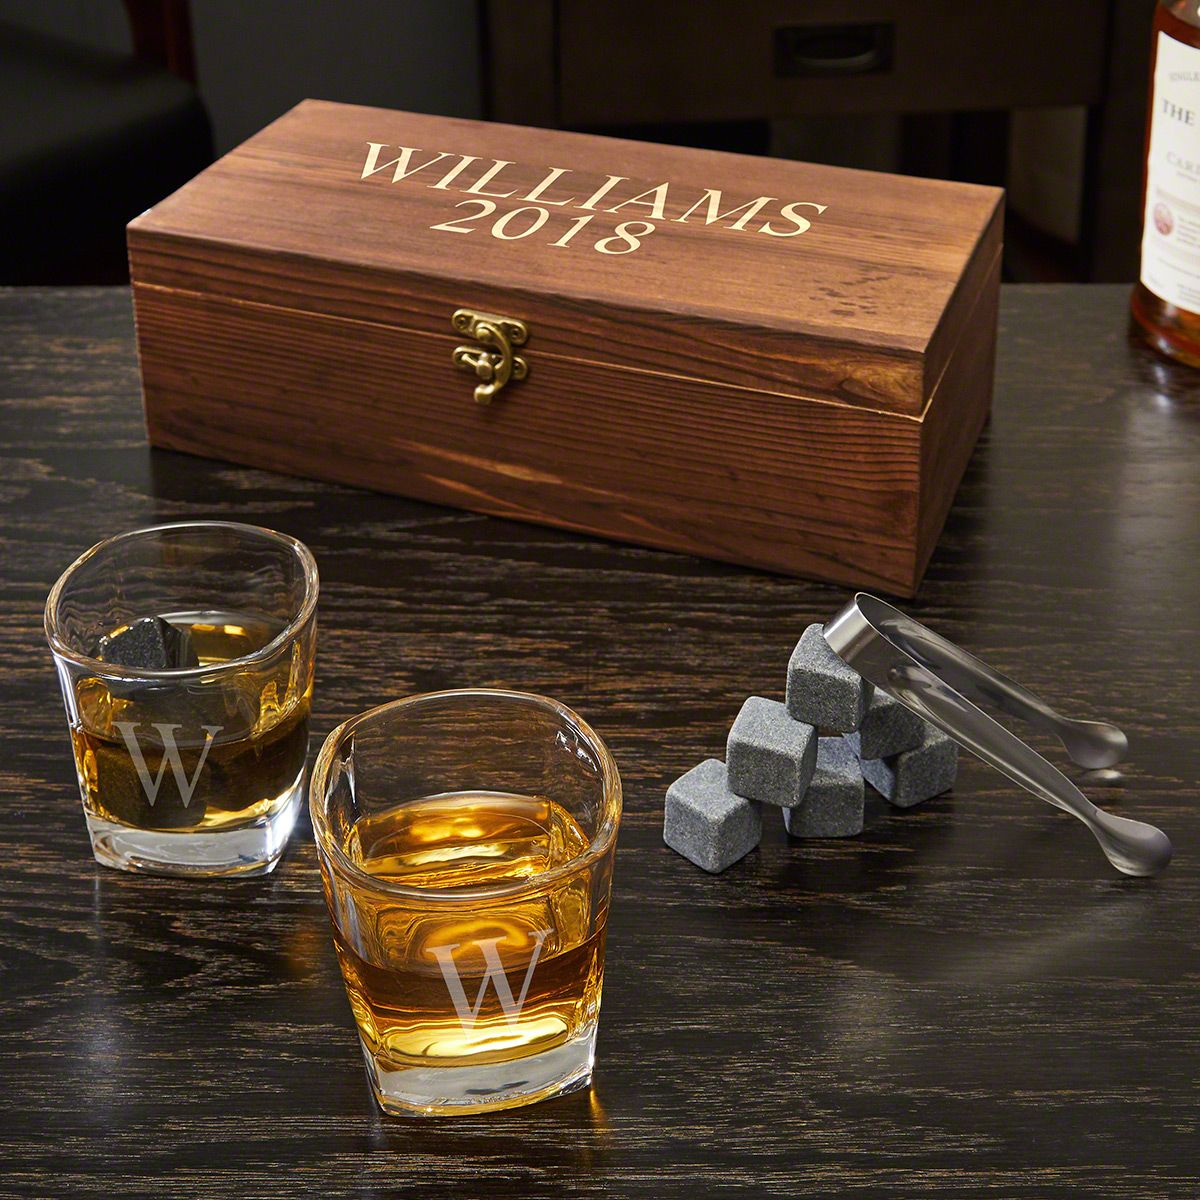 Wisky Glas Schaefer Personalized Whiskey Stones And 6 Oz Shot Glasses Gift Set